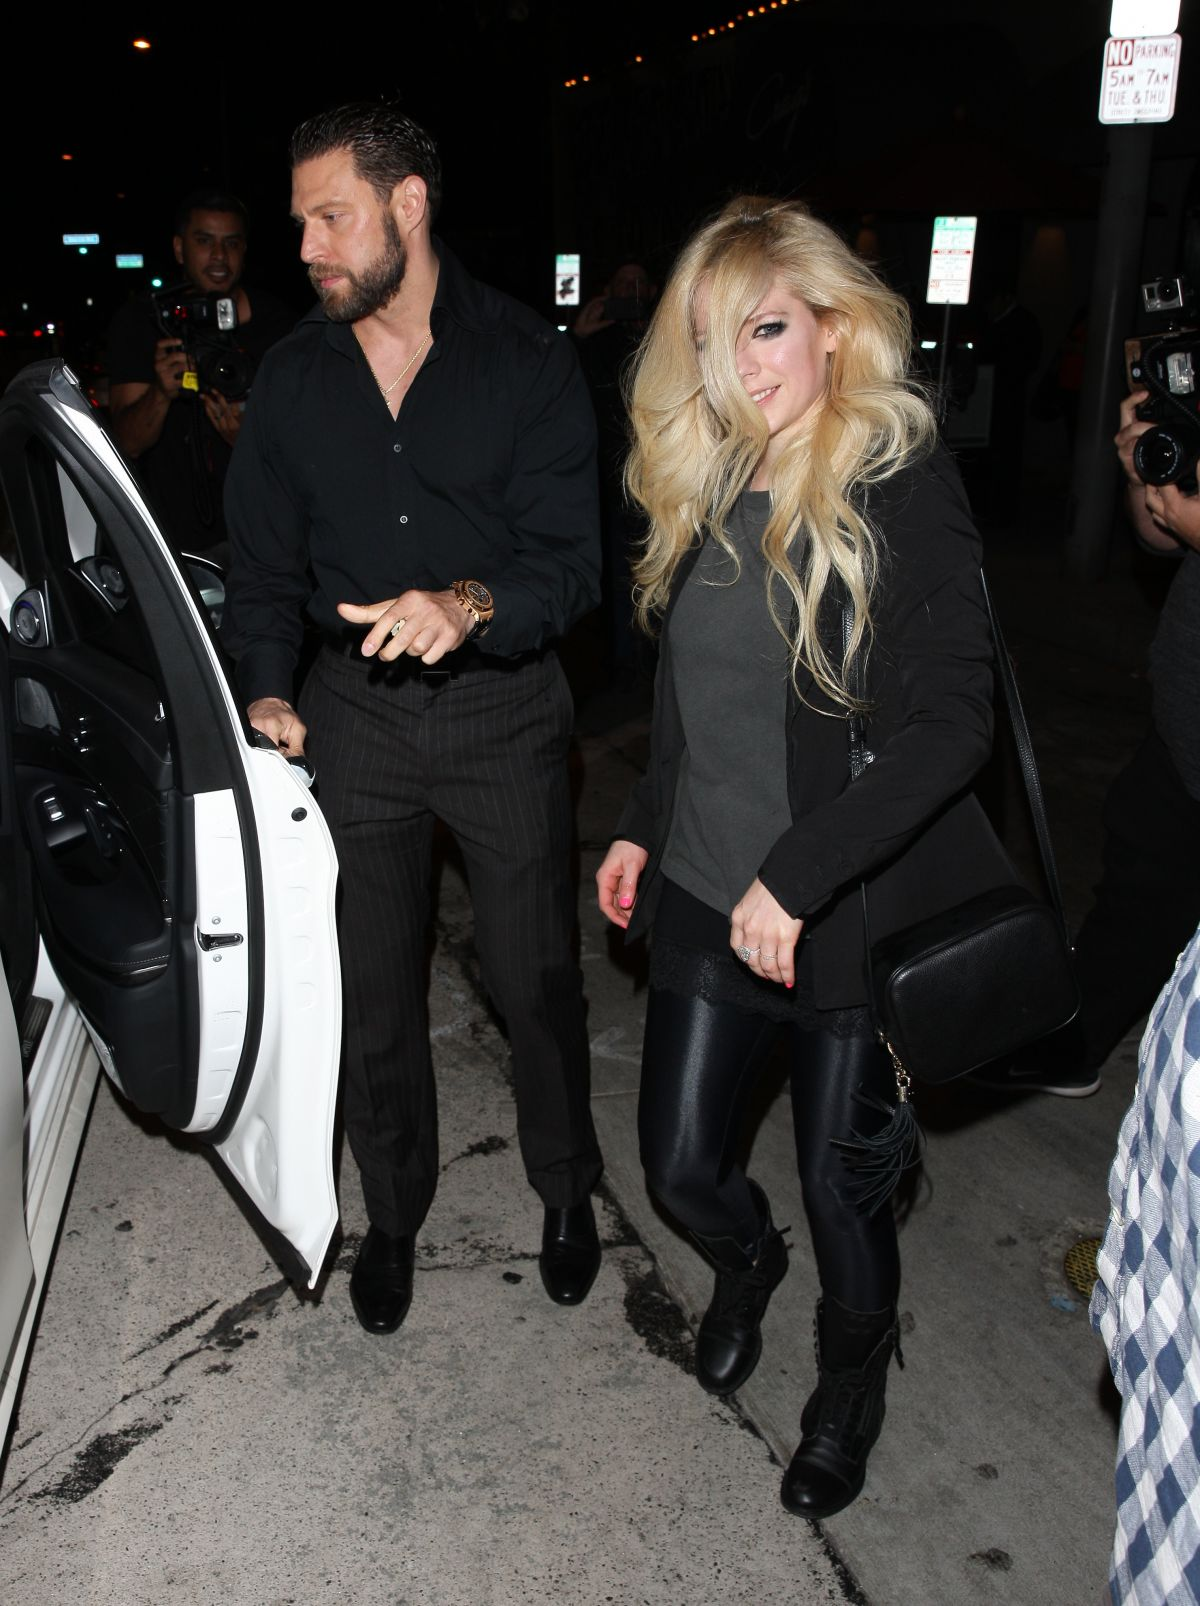 Avril Lavigne can t hide delight on date with new beau